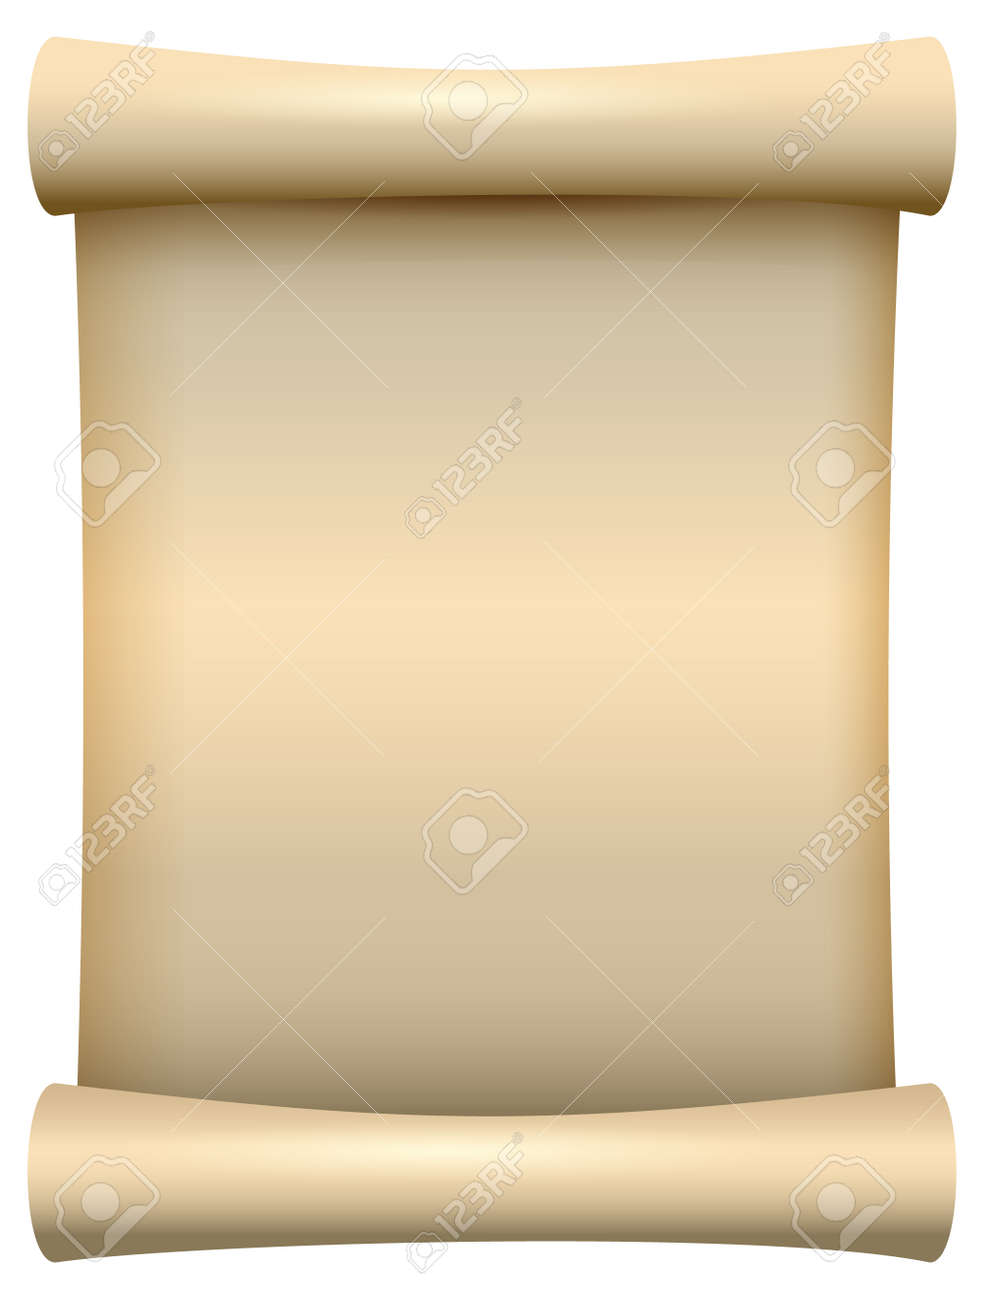 Empty blank paper scroll papyrus isolated on white. Vector cartoon illustration - 167099789